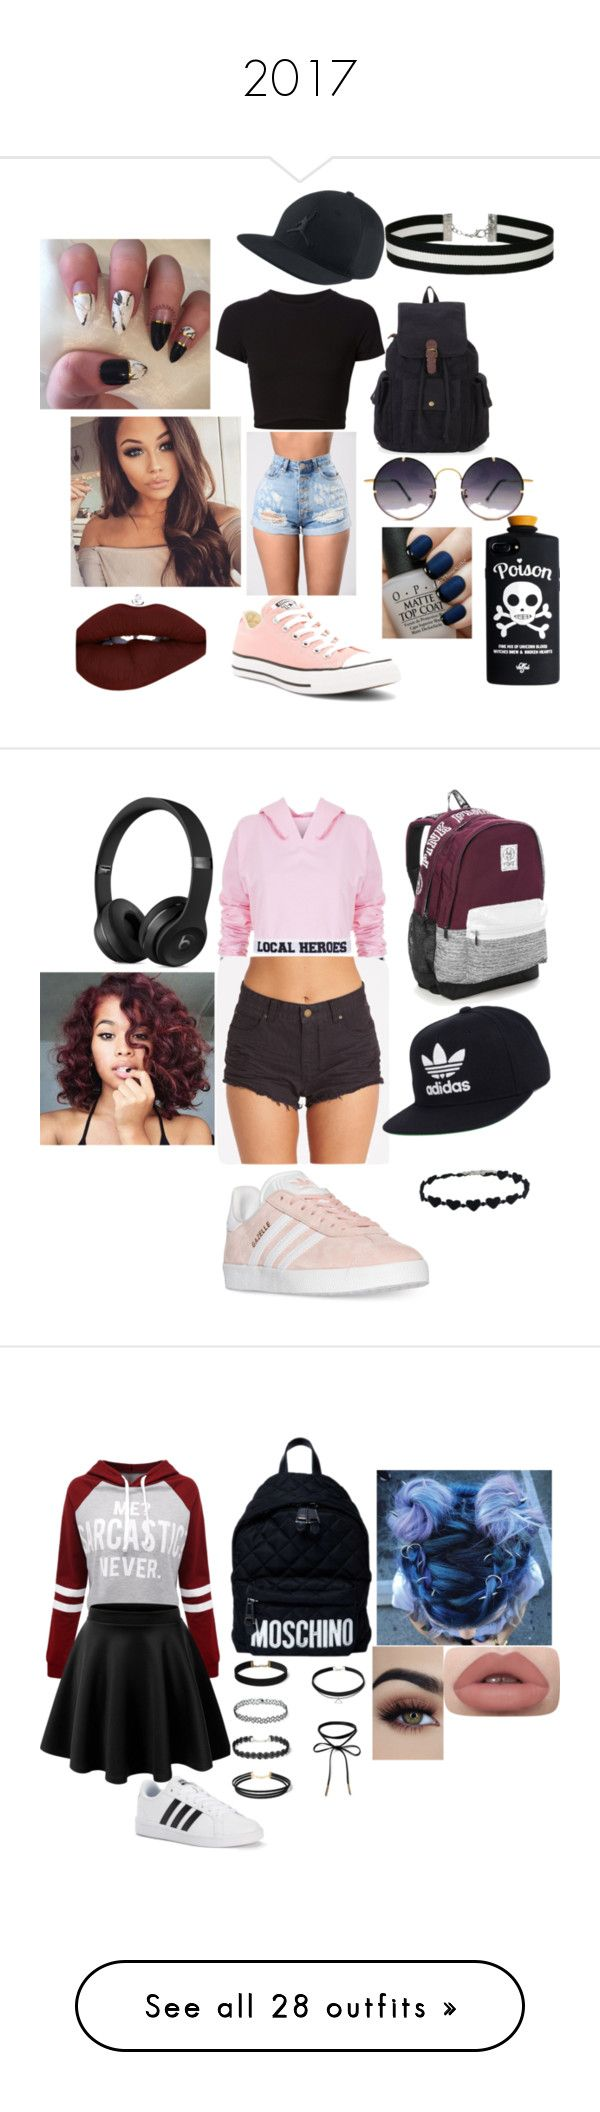 """""""2017"""" by mariapazmarixxd on Polyvore featuring moda, Getting Back To Square One, Converse, Spitfire, Miss Selfridge, OPI, Local Heroes, Billabong, adidas y Victoria's Secret"""